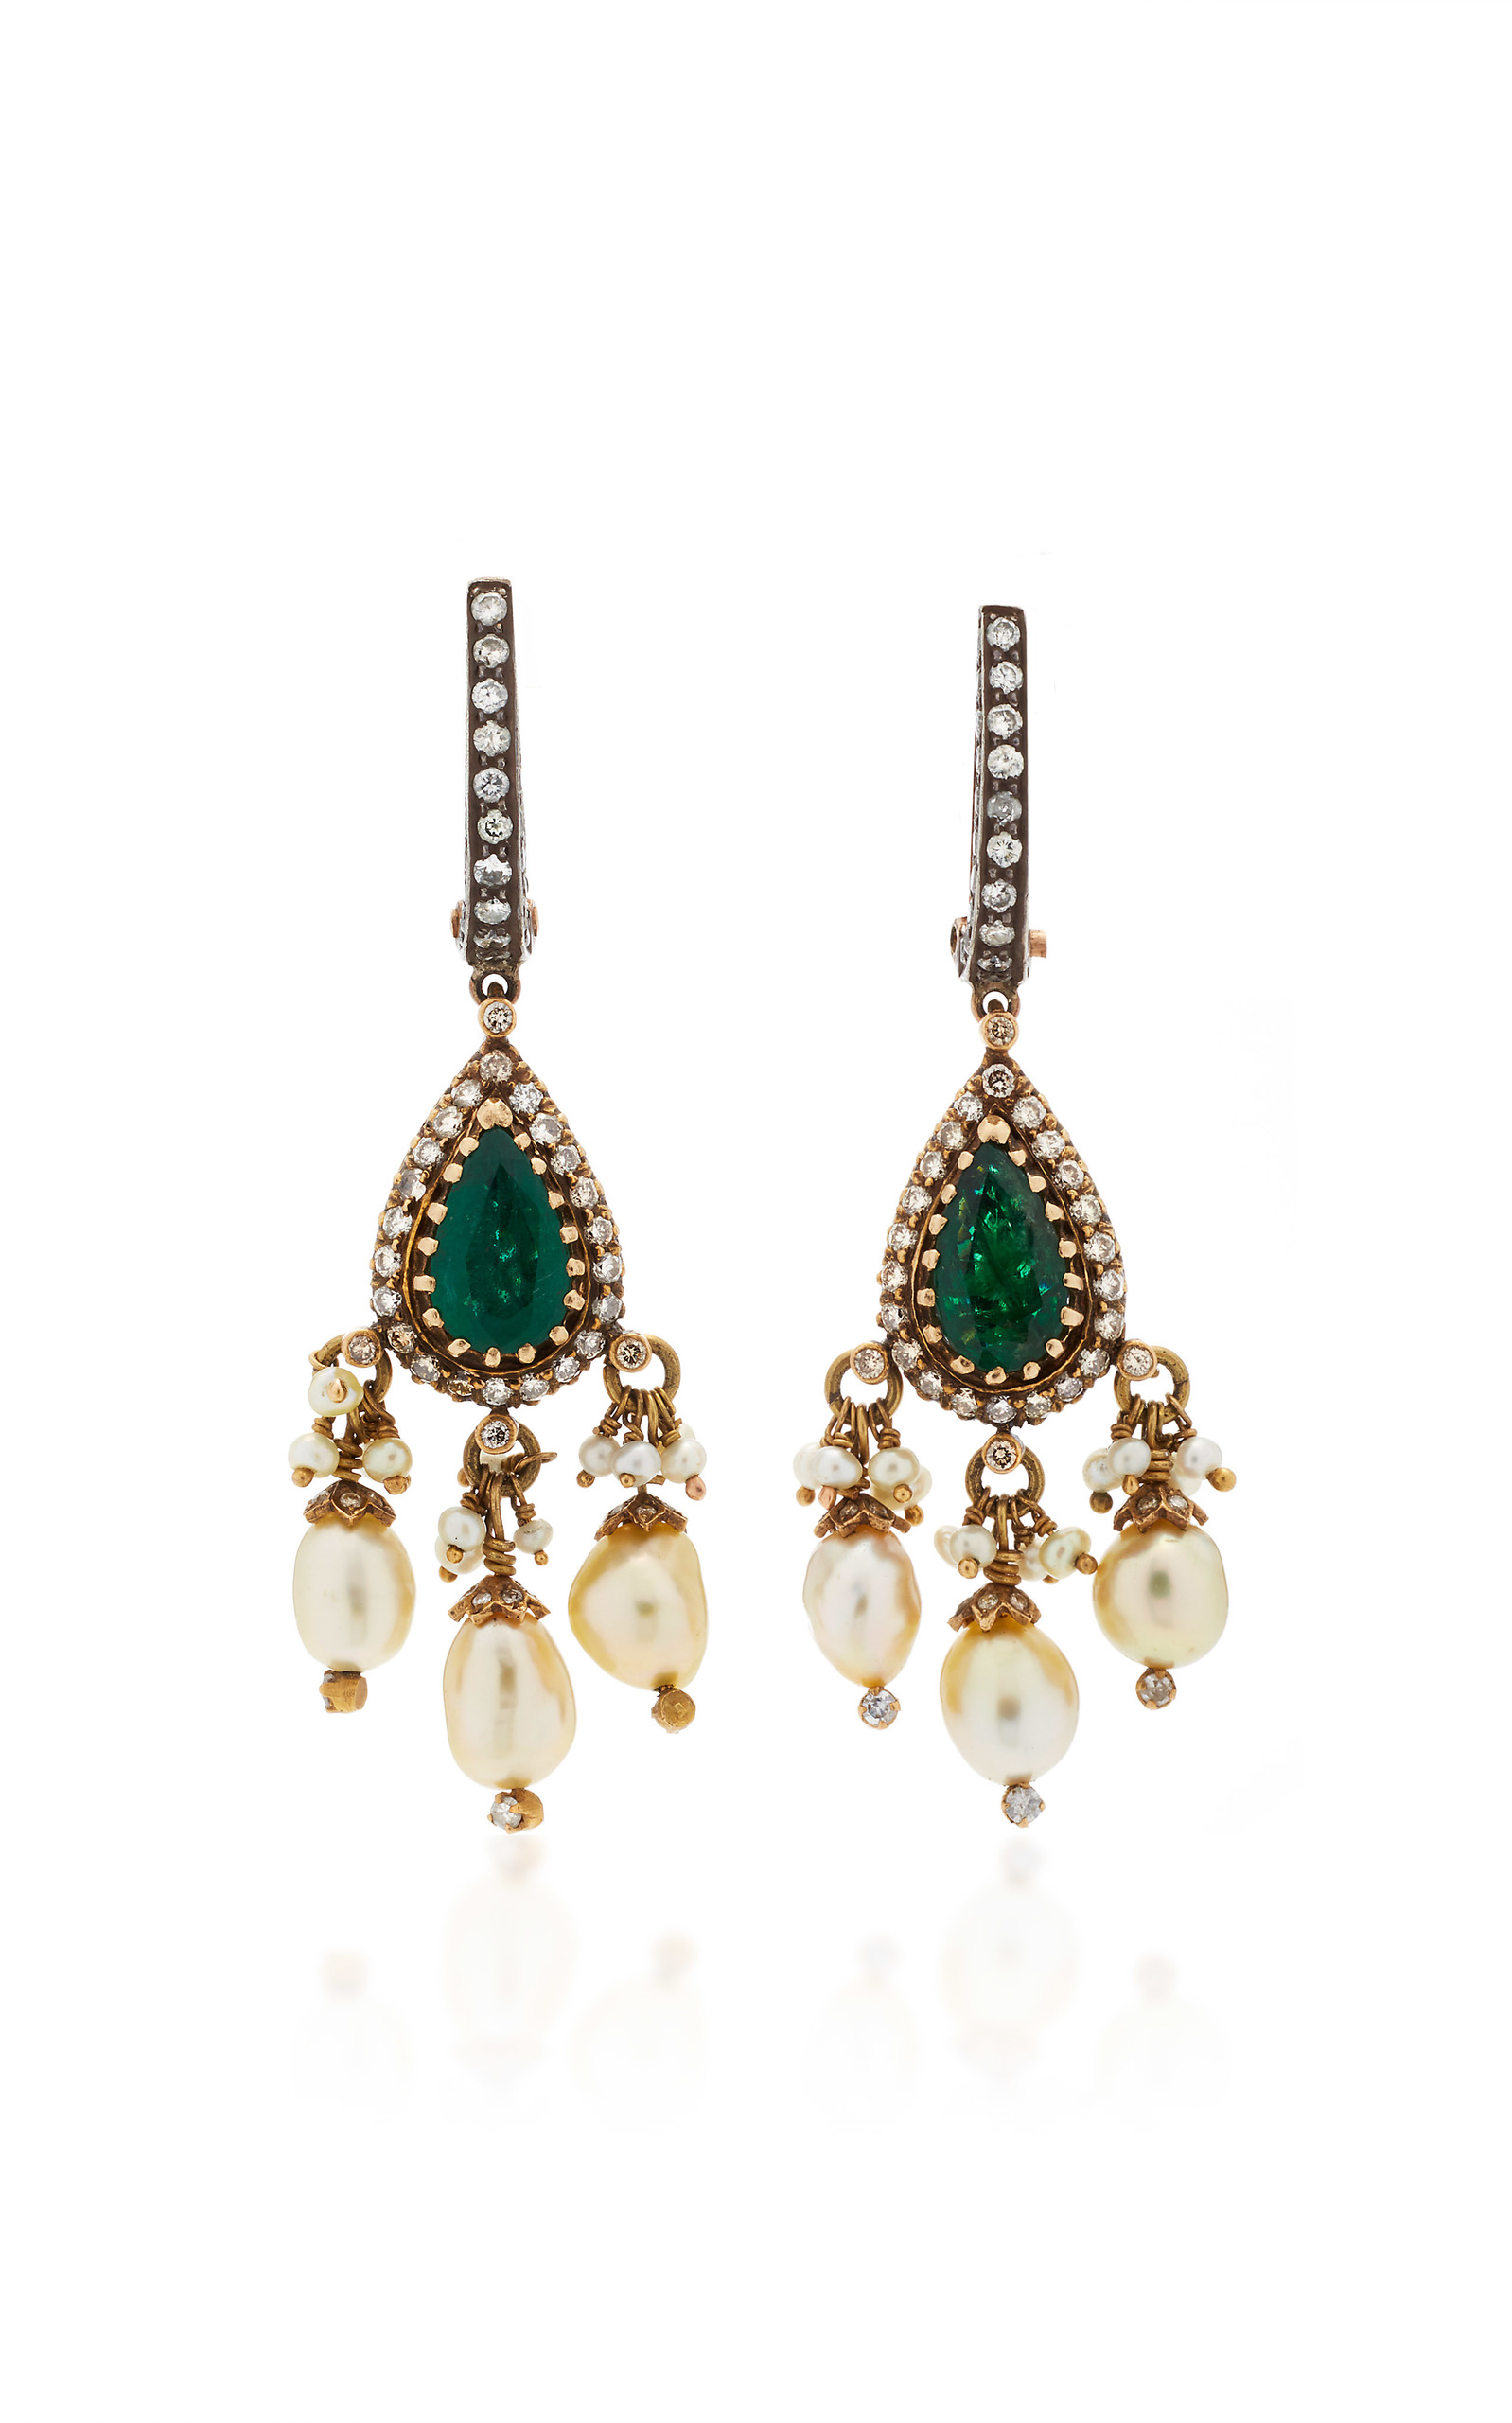 0a7775406d68d Gold Drop Earrings with Diamond, Emerald & Pearls